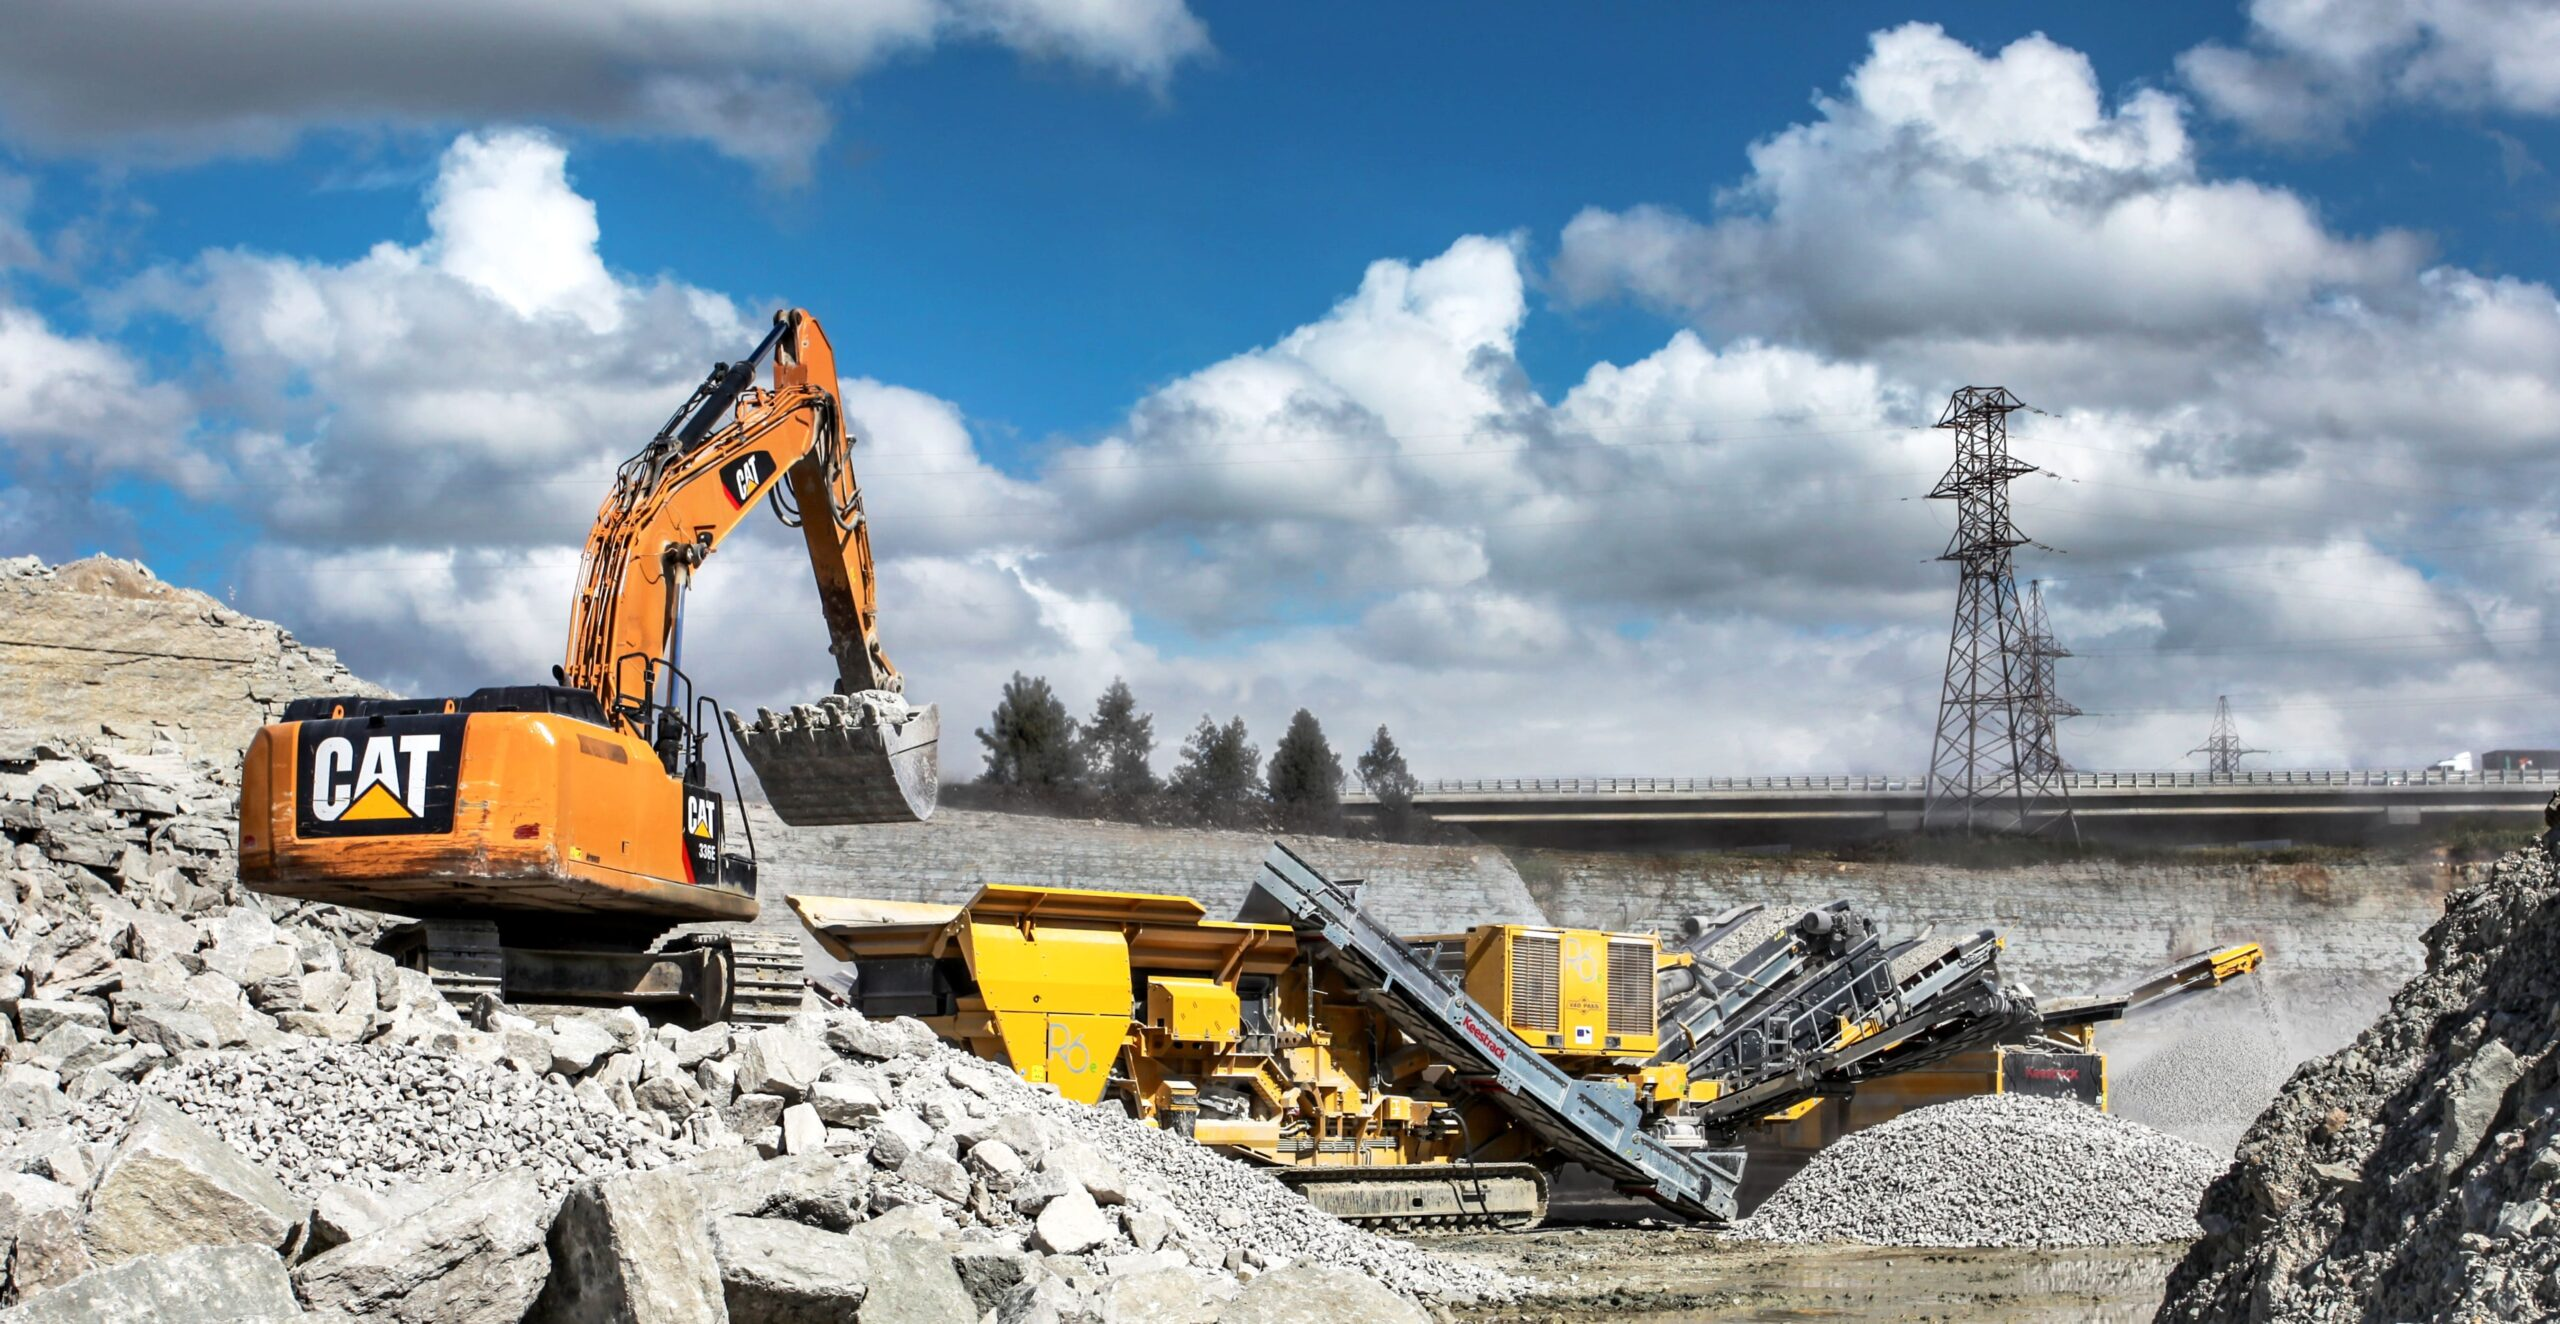 Paekivitoodete Tehas sold another Keestrack mobile stone crusher